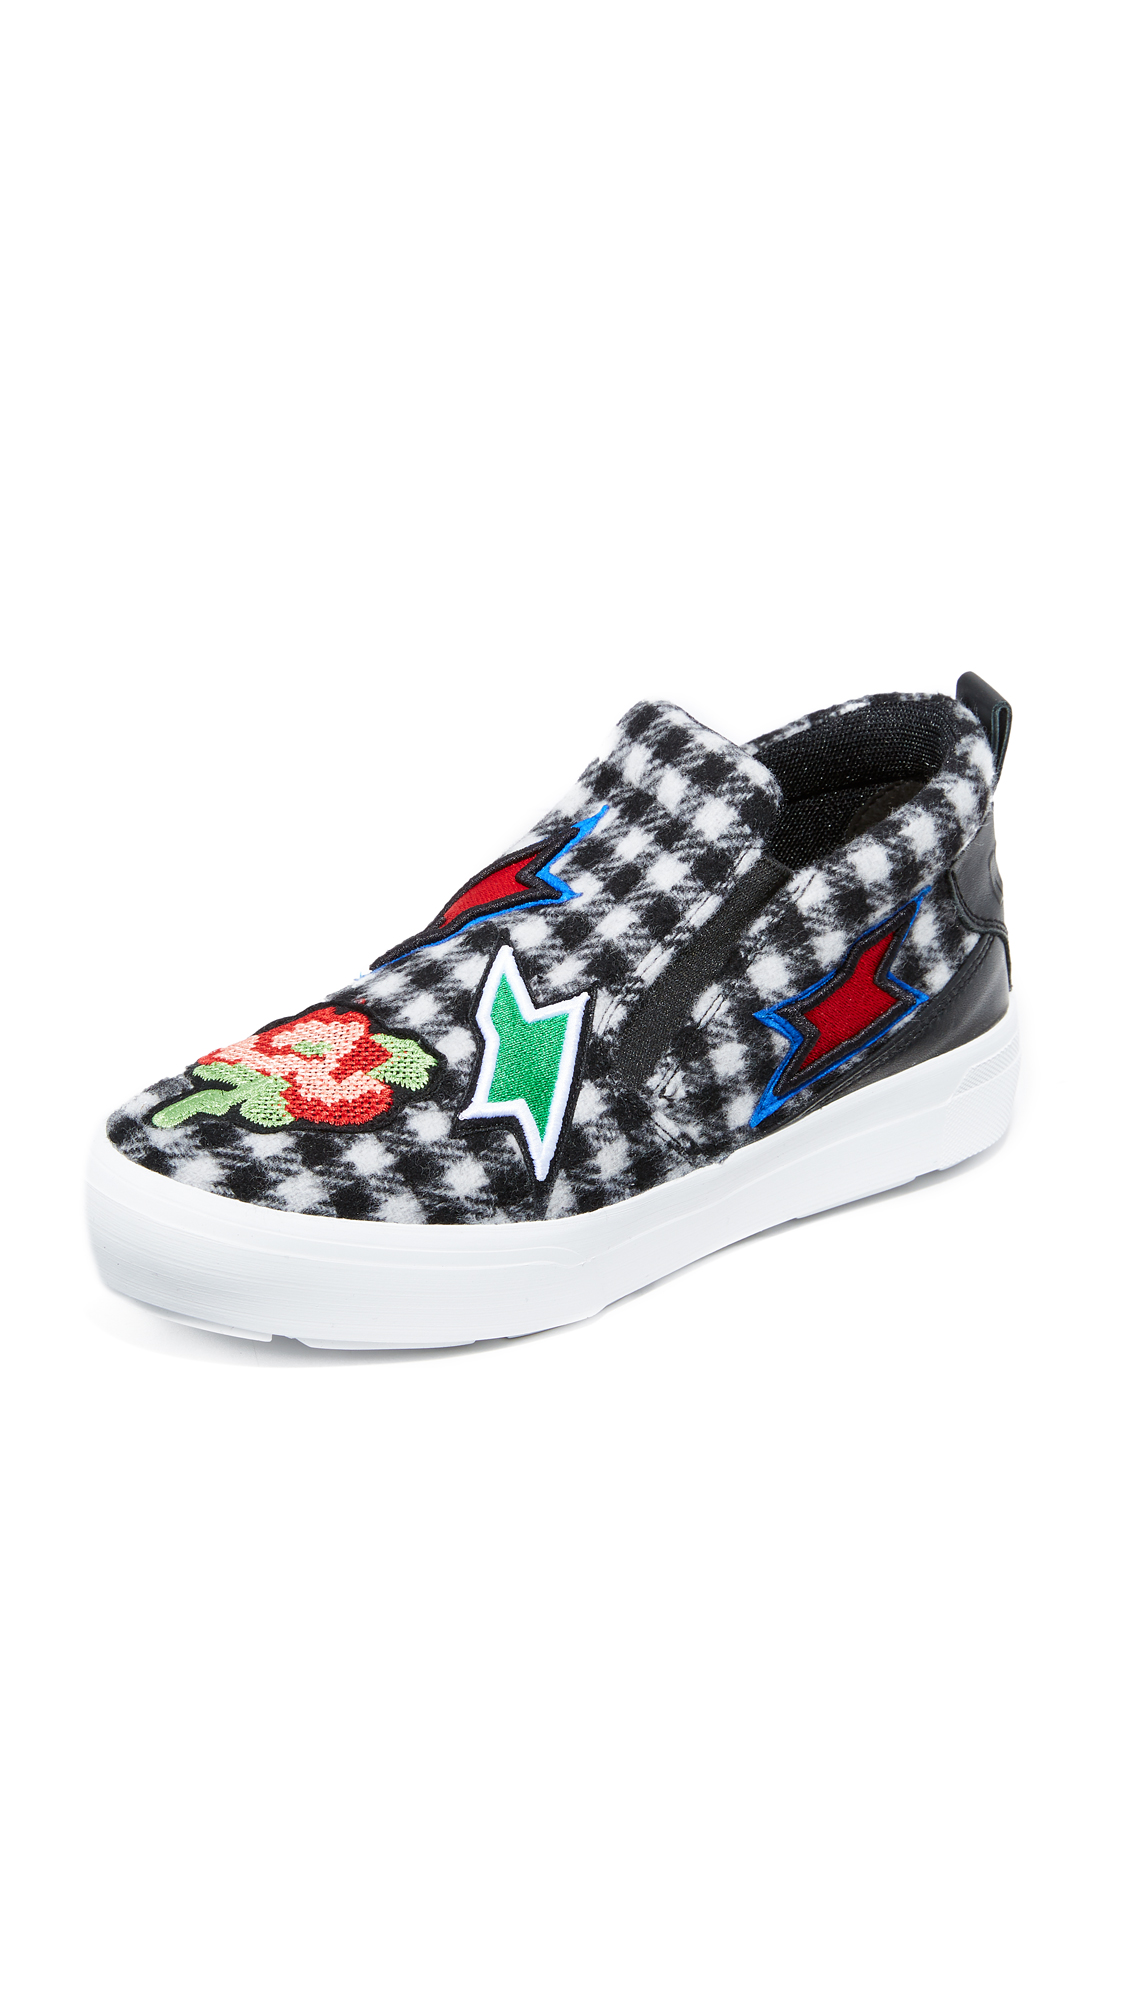 MSGM Ollie Slip On Sneakers - Tweed Patchwork